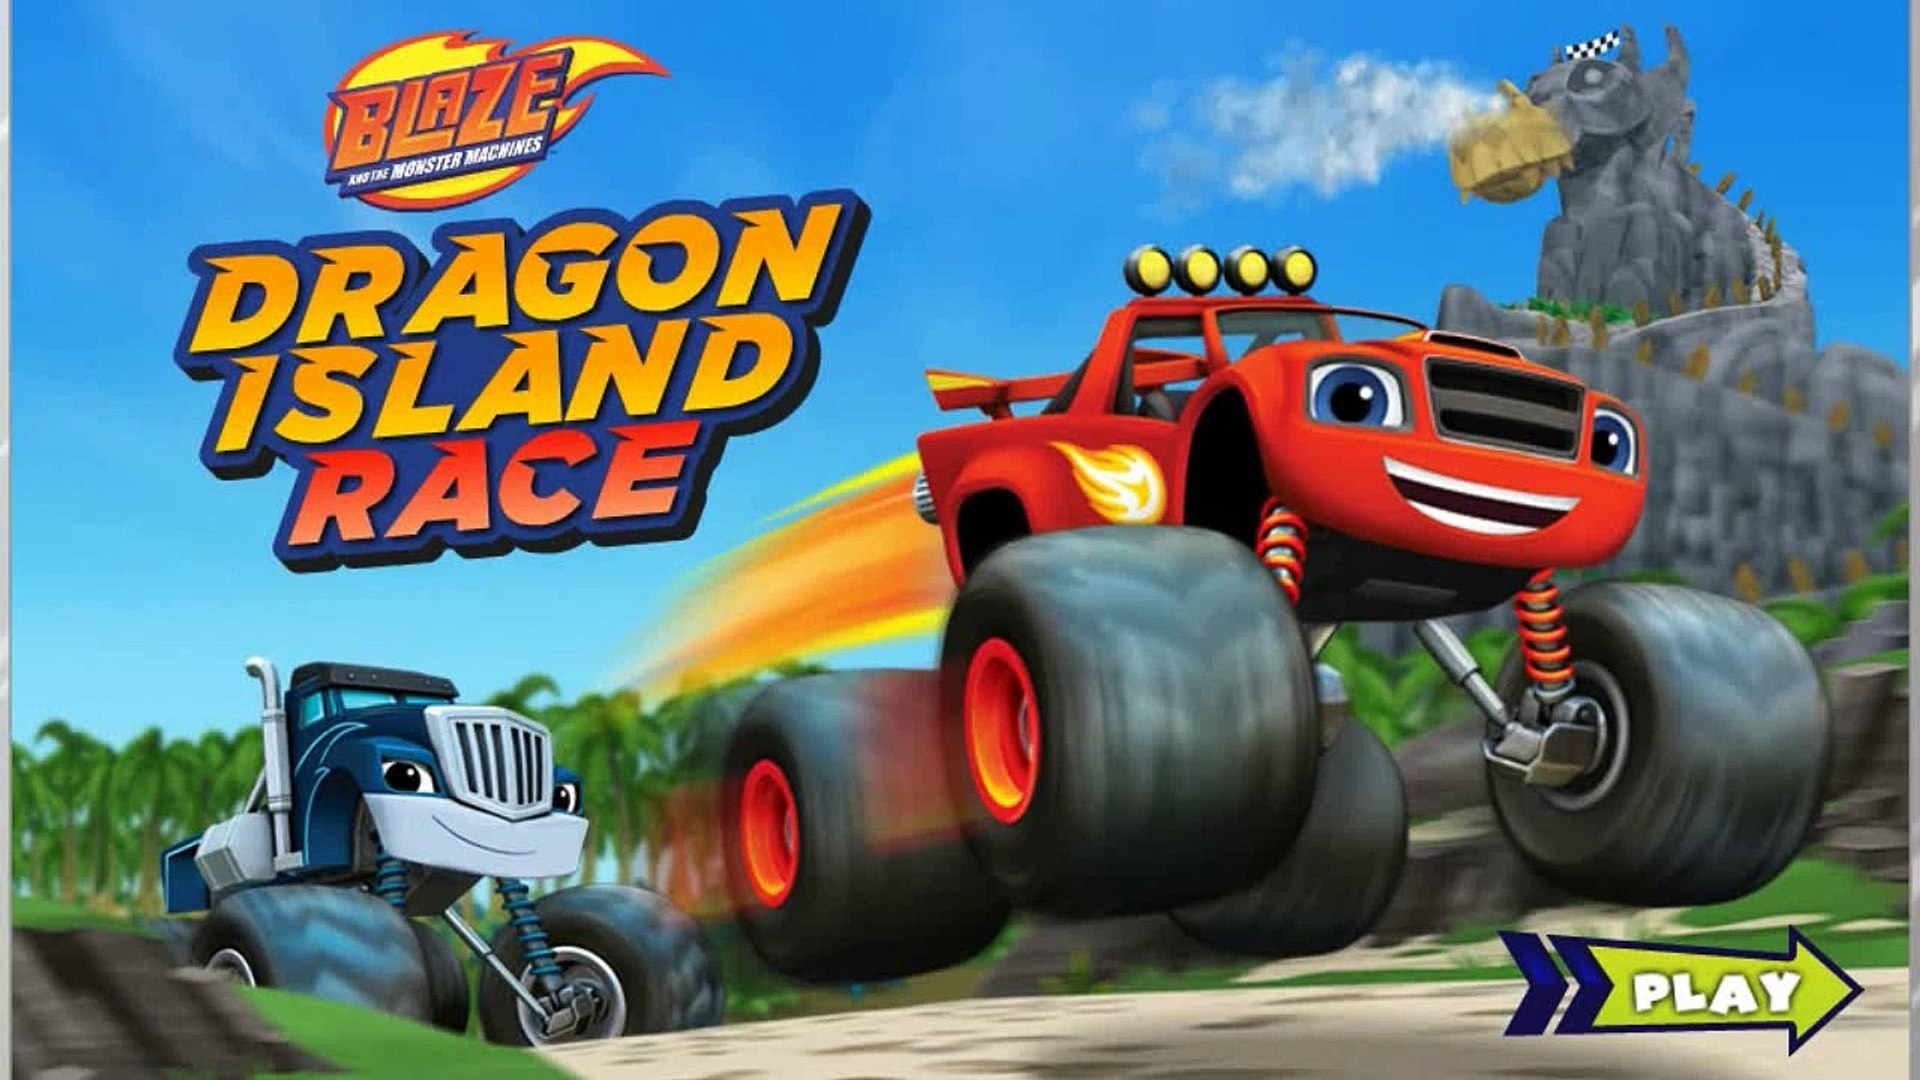 Blaze and the monster machines - Dragon Island Race against Crusher full episode english